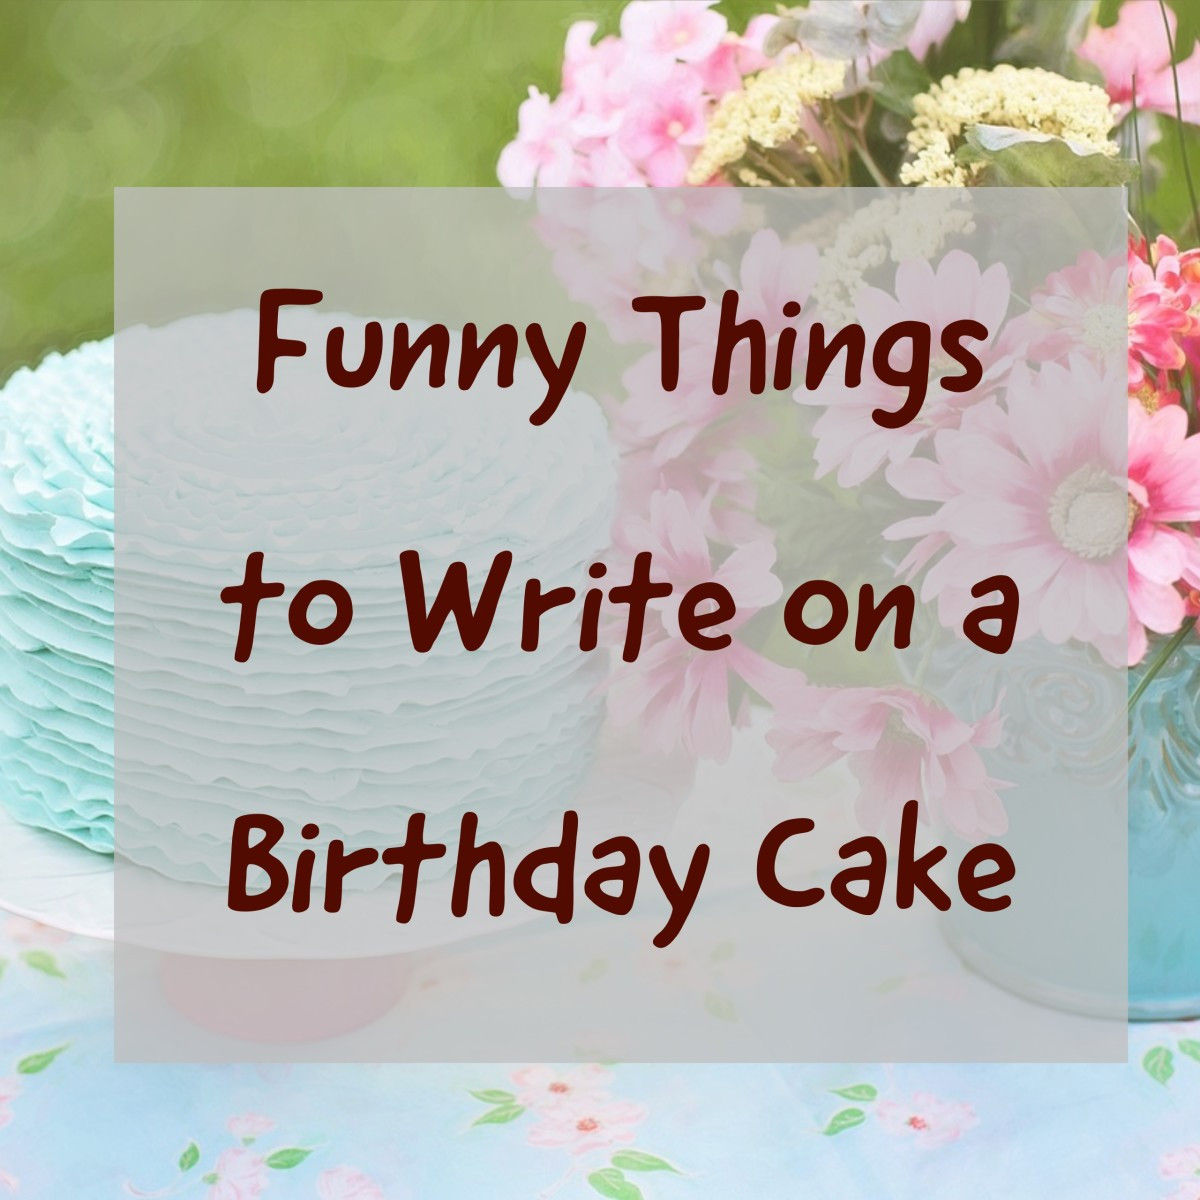 Birthday Cake Sayings  Over 100 Funny Things to Write on a Birthday Cake